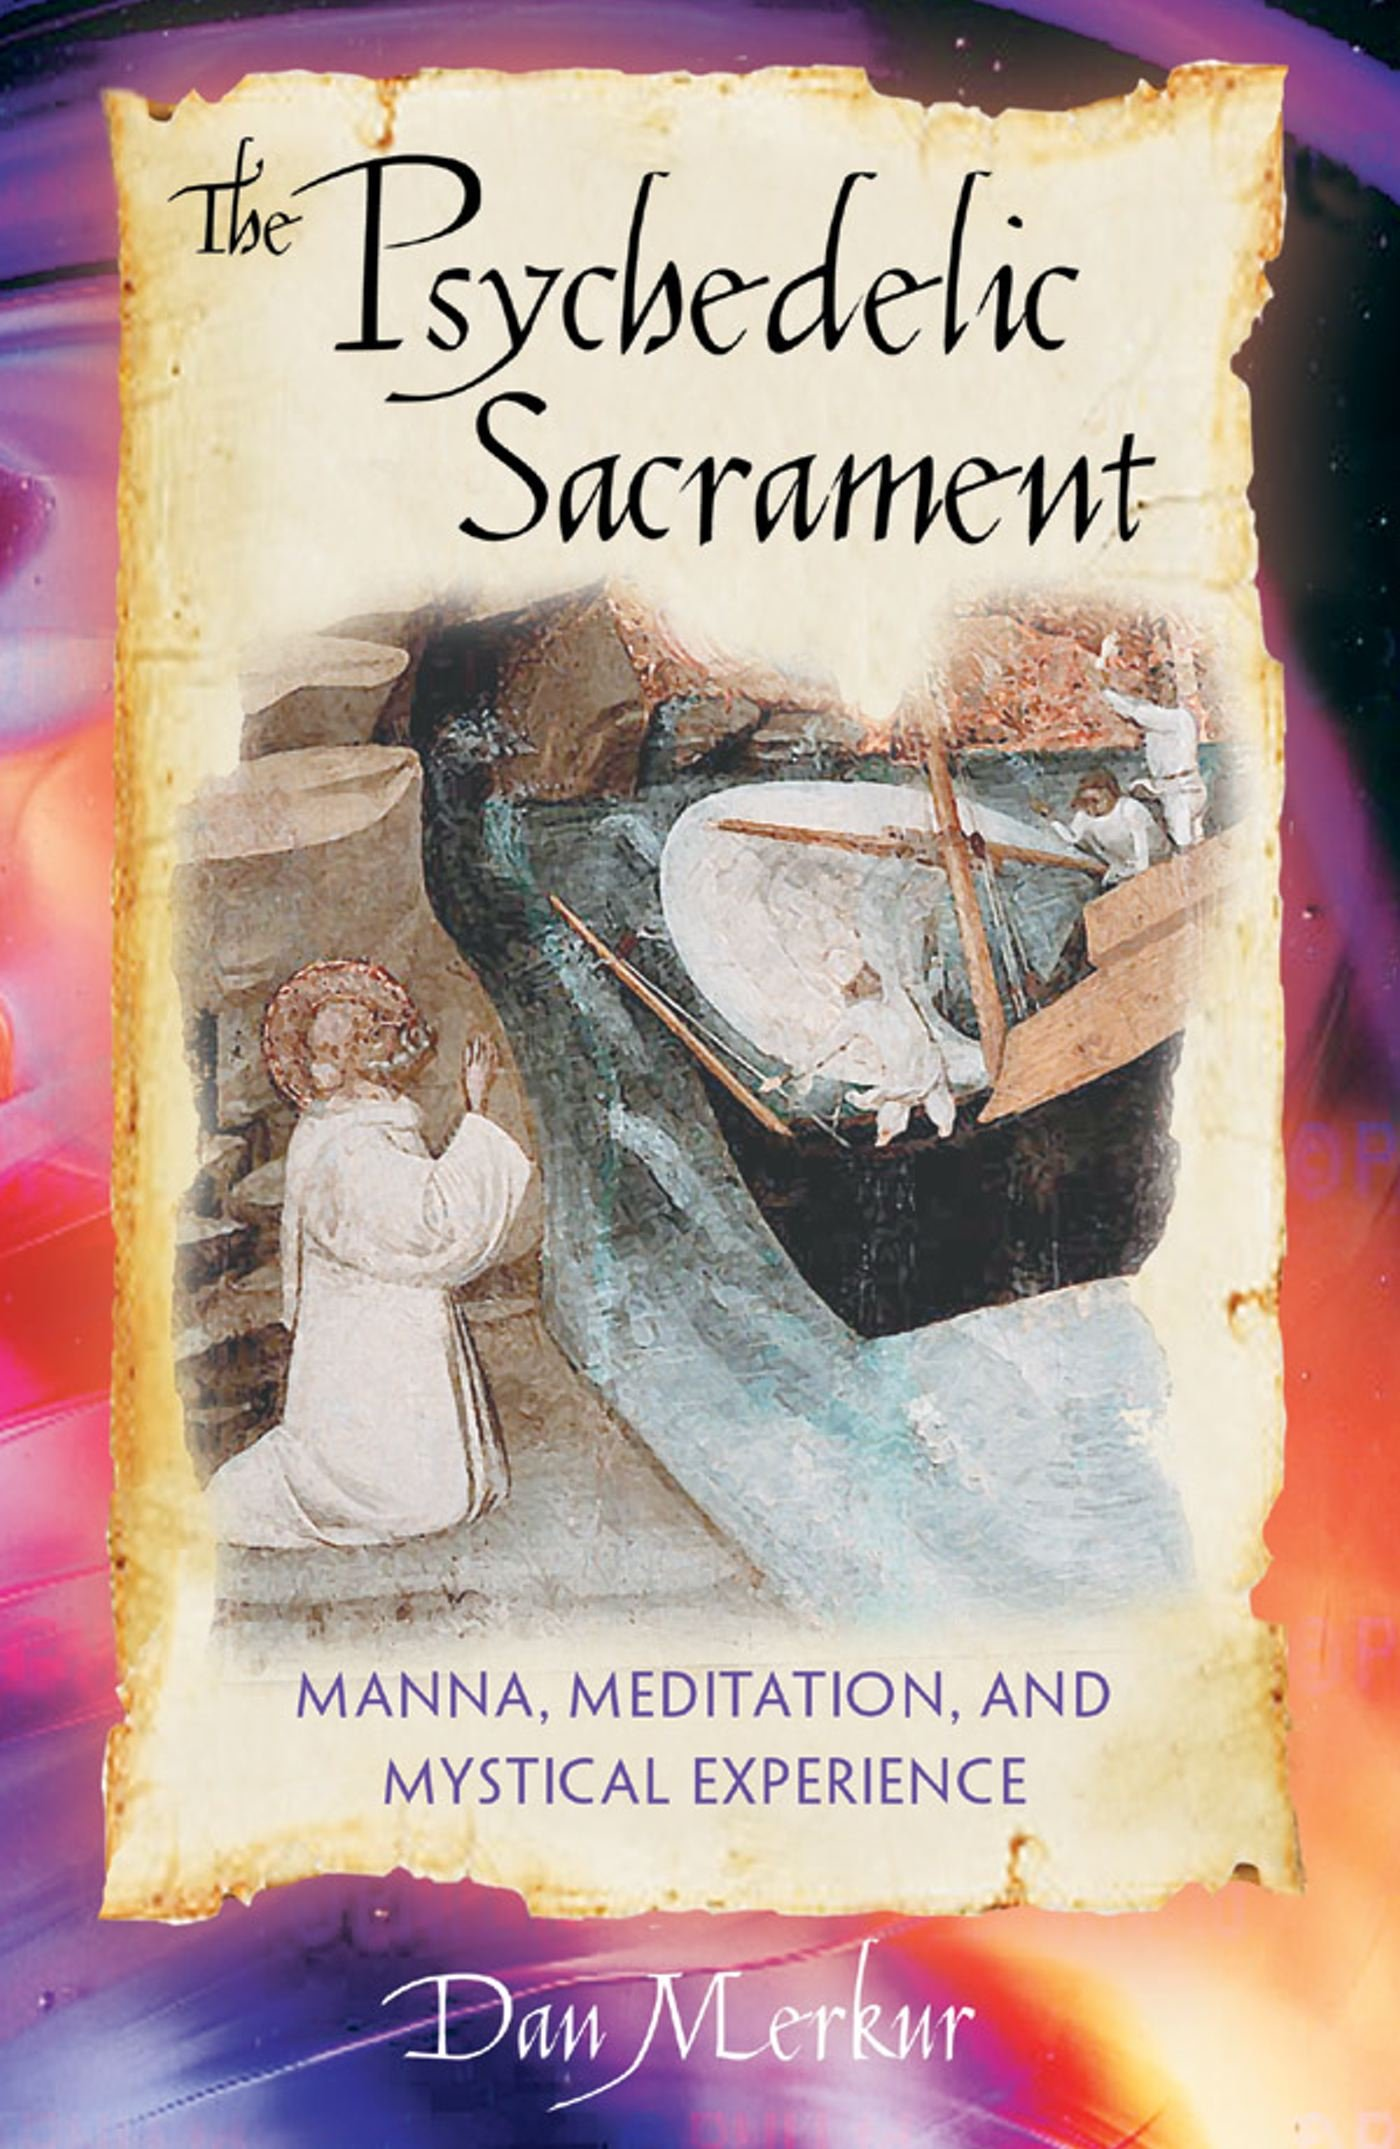 The Psychedelic Sacrament: Manna, Meditation, and Mystical Experience (Inglese) Copertina flessibile – 27 set 2001 Daniel Merkur Park Street Pr 089281862X BODY